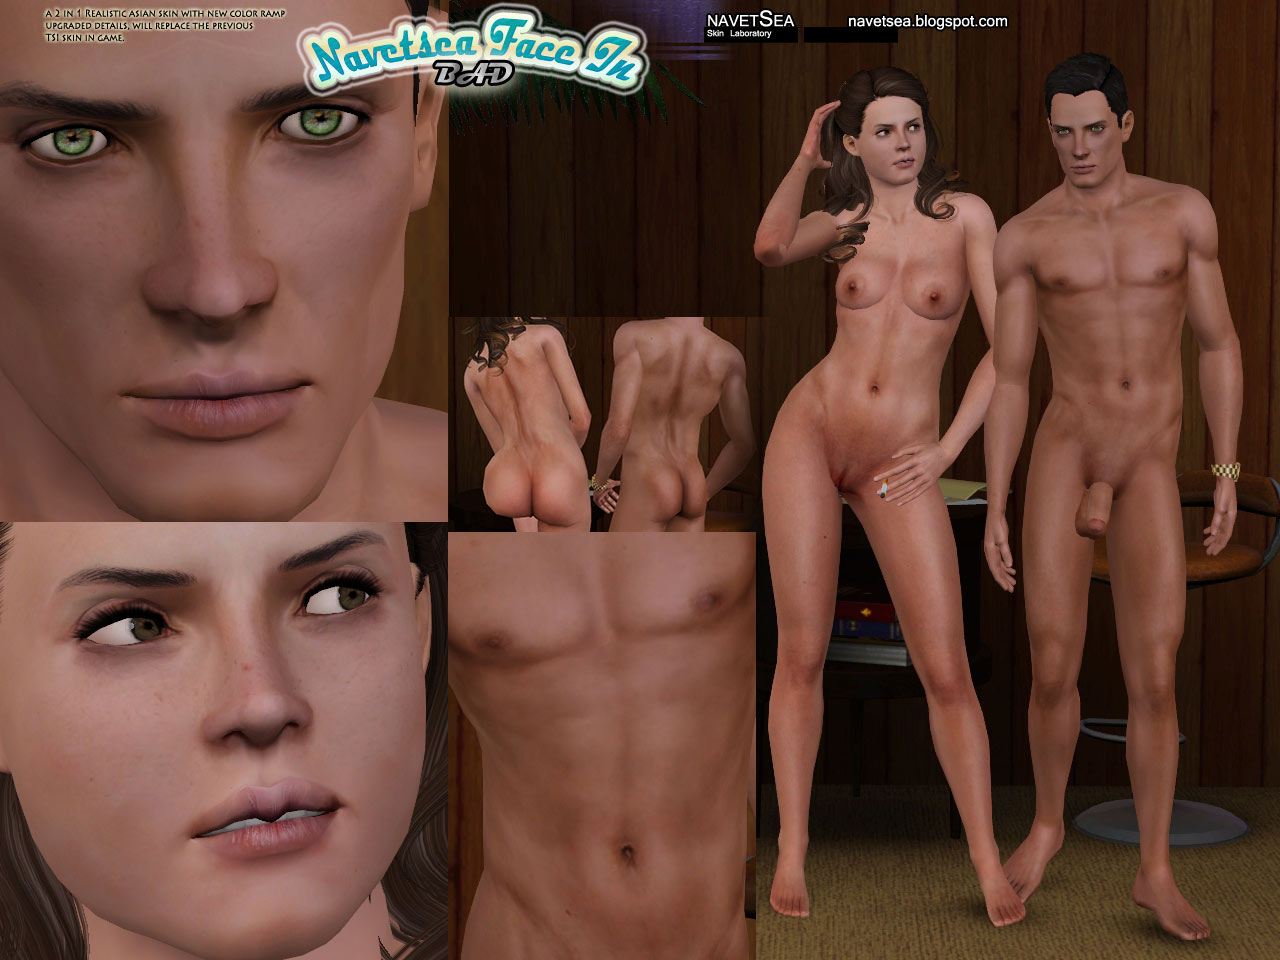 Nude mod for sims fucks gallery